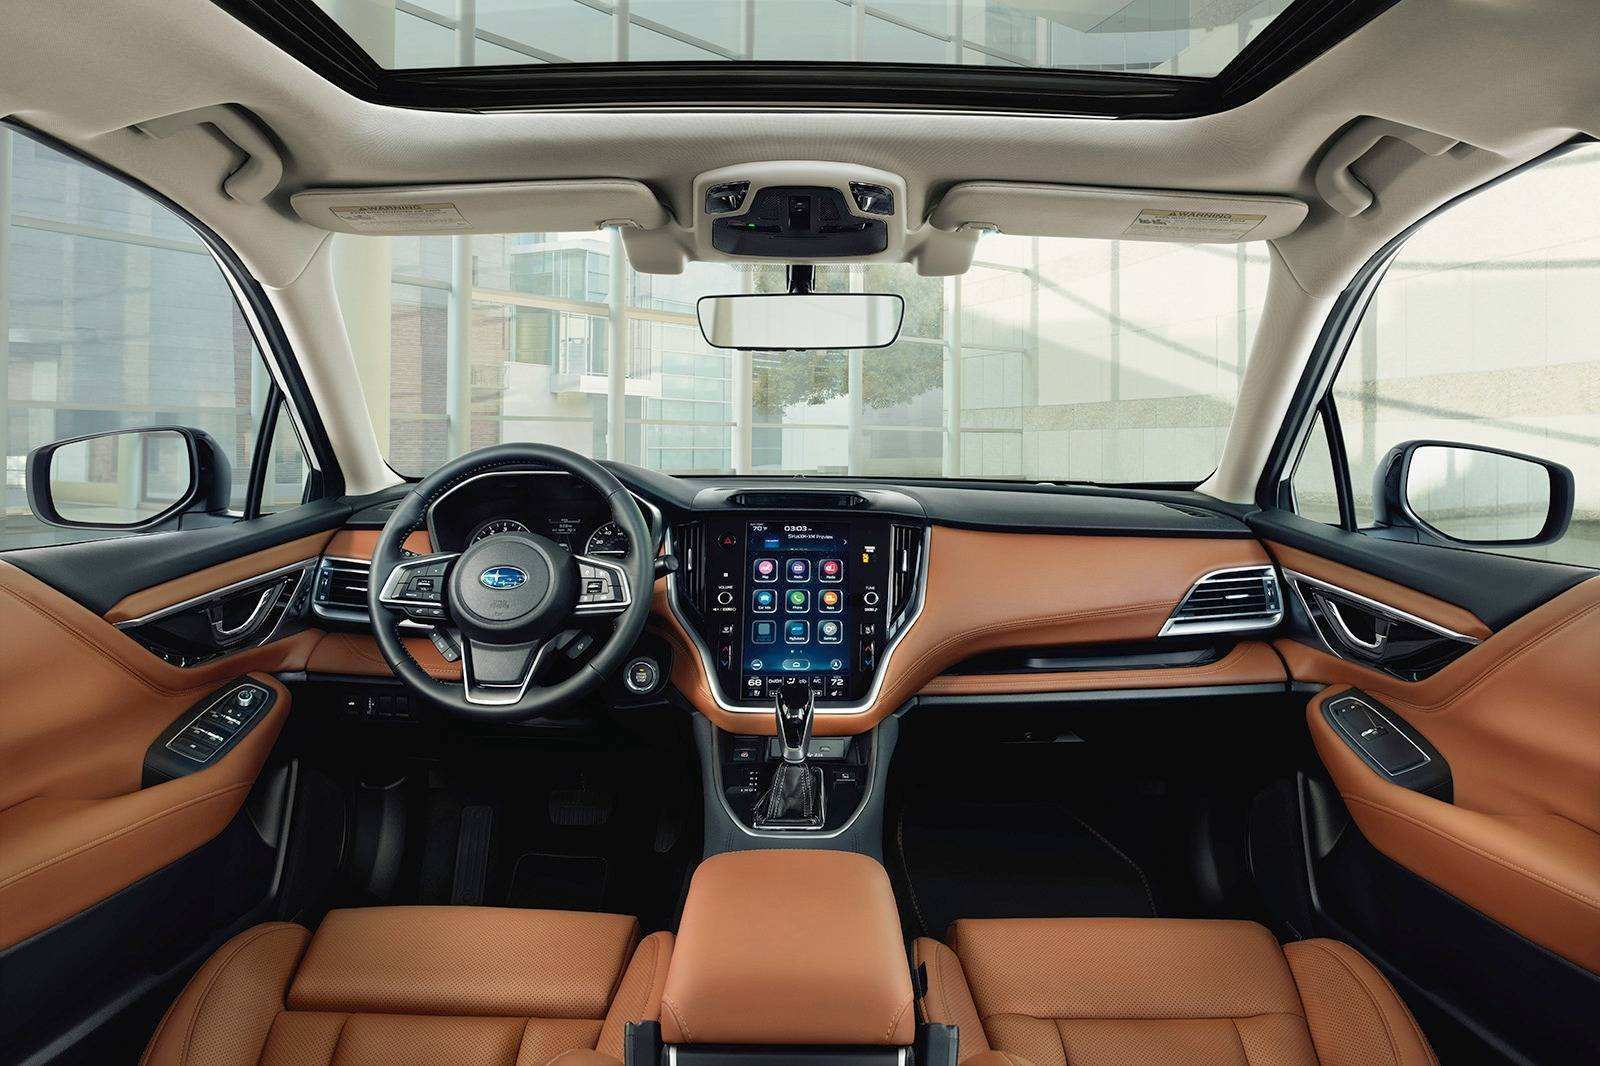 78 Gallery of 2020 Subaru Legacy Price Specs and Review for 2020 Subaru Legacy Price